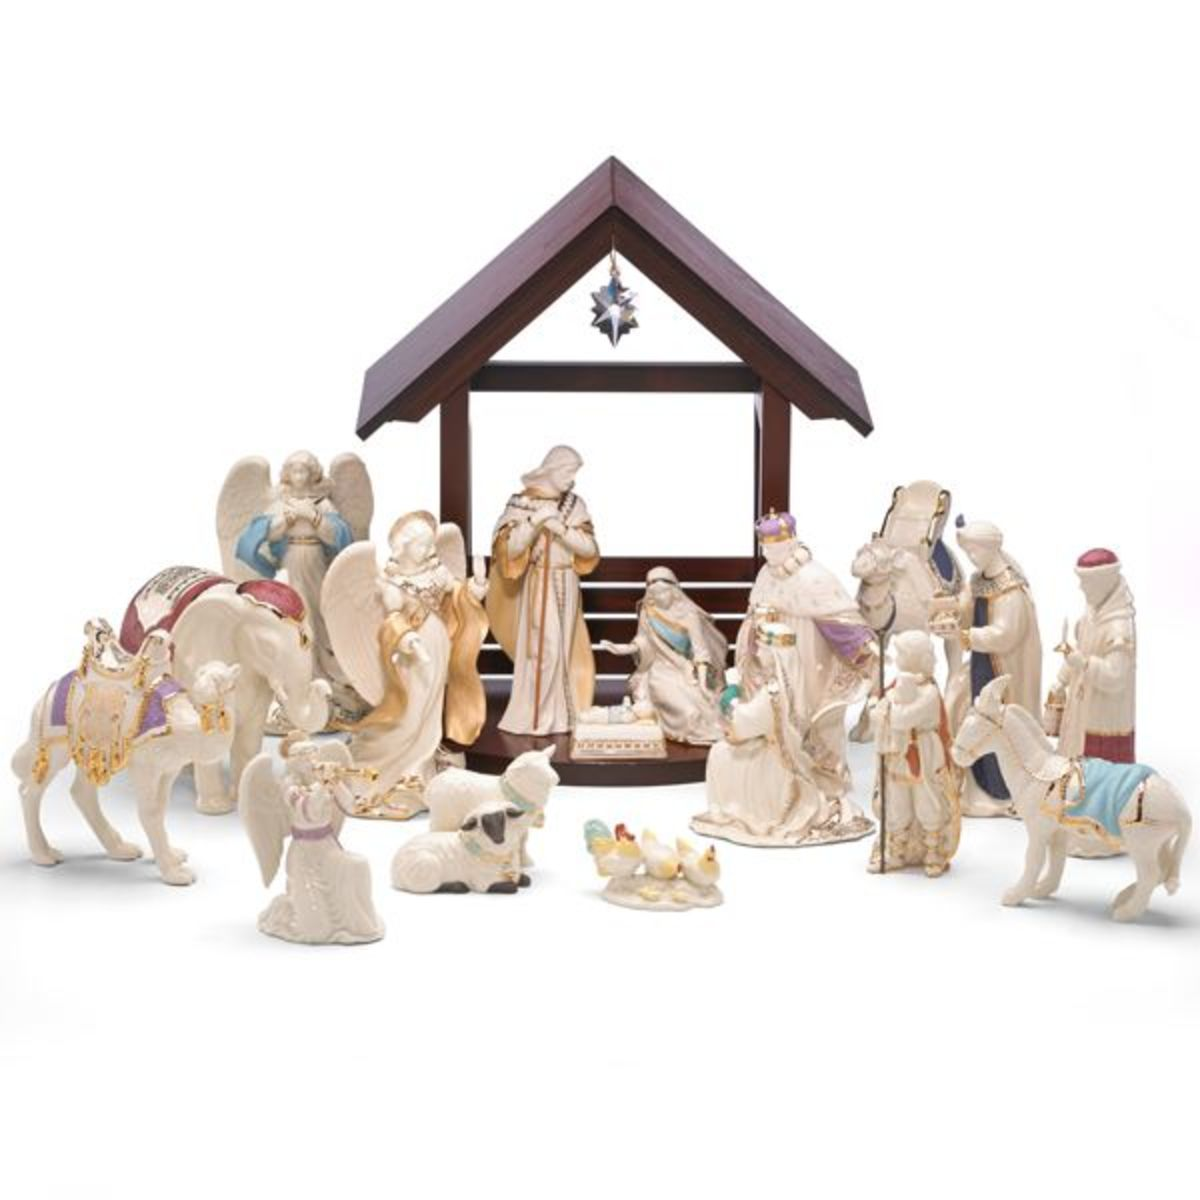 nativity set by Lenox with Mary, Joseph and baby Jesus and several others in white porcelain with gold